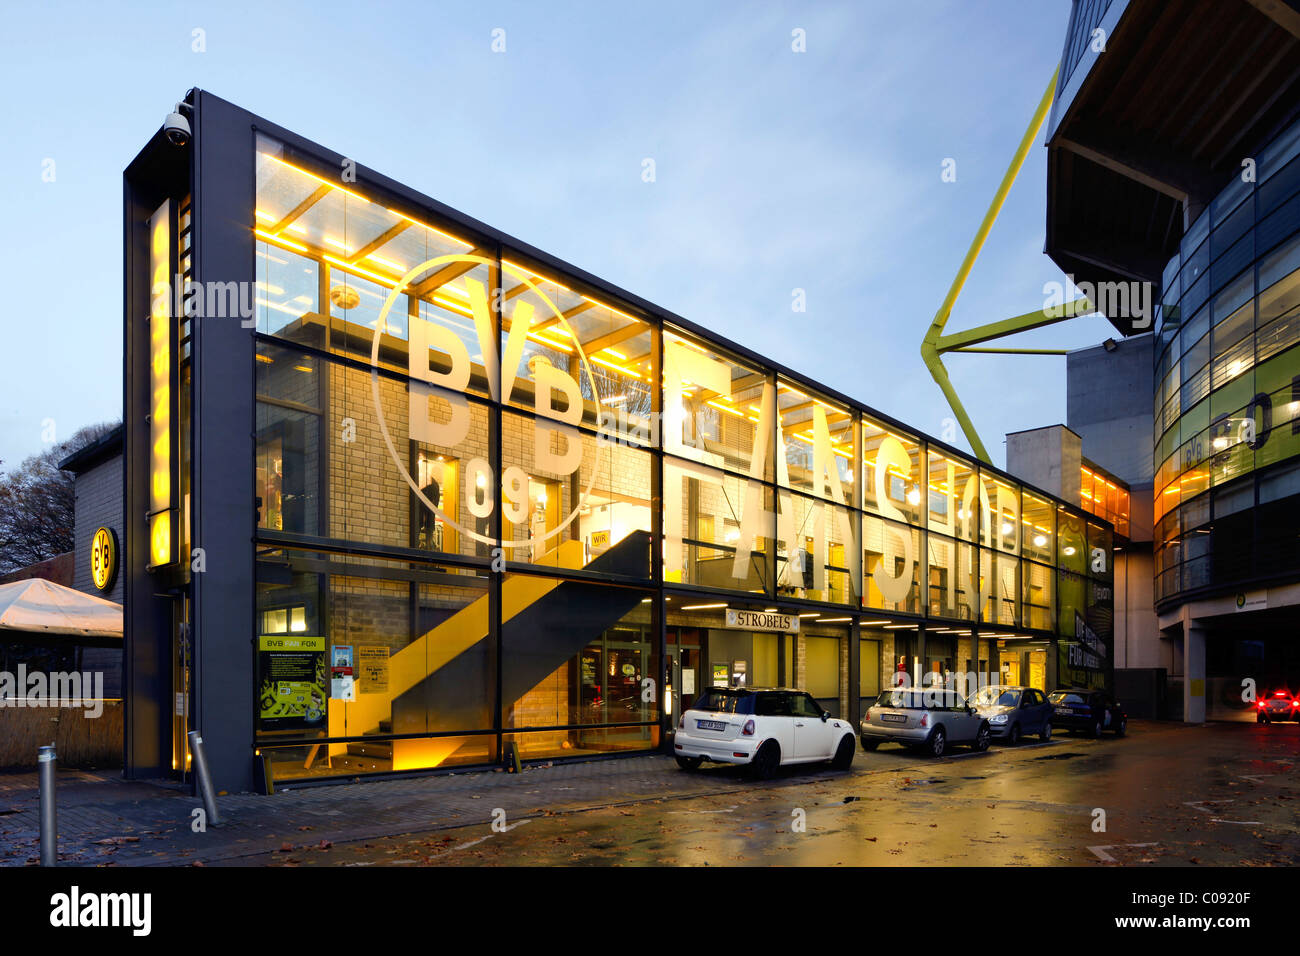 BVB Fan Shop At The Westfalenstadion Stadium Signal-Iduna-Park Stock Photo Royalty Free Image ...